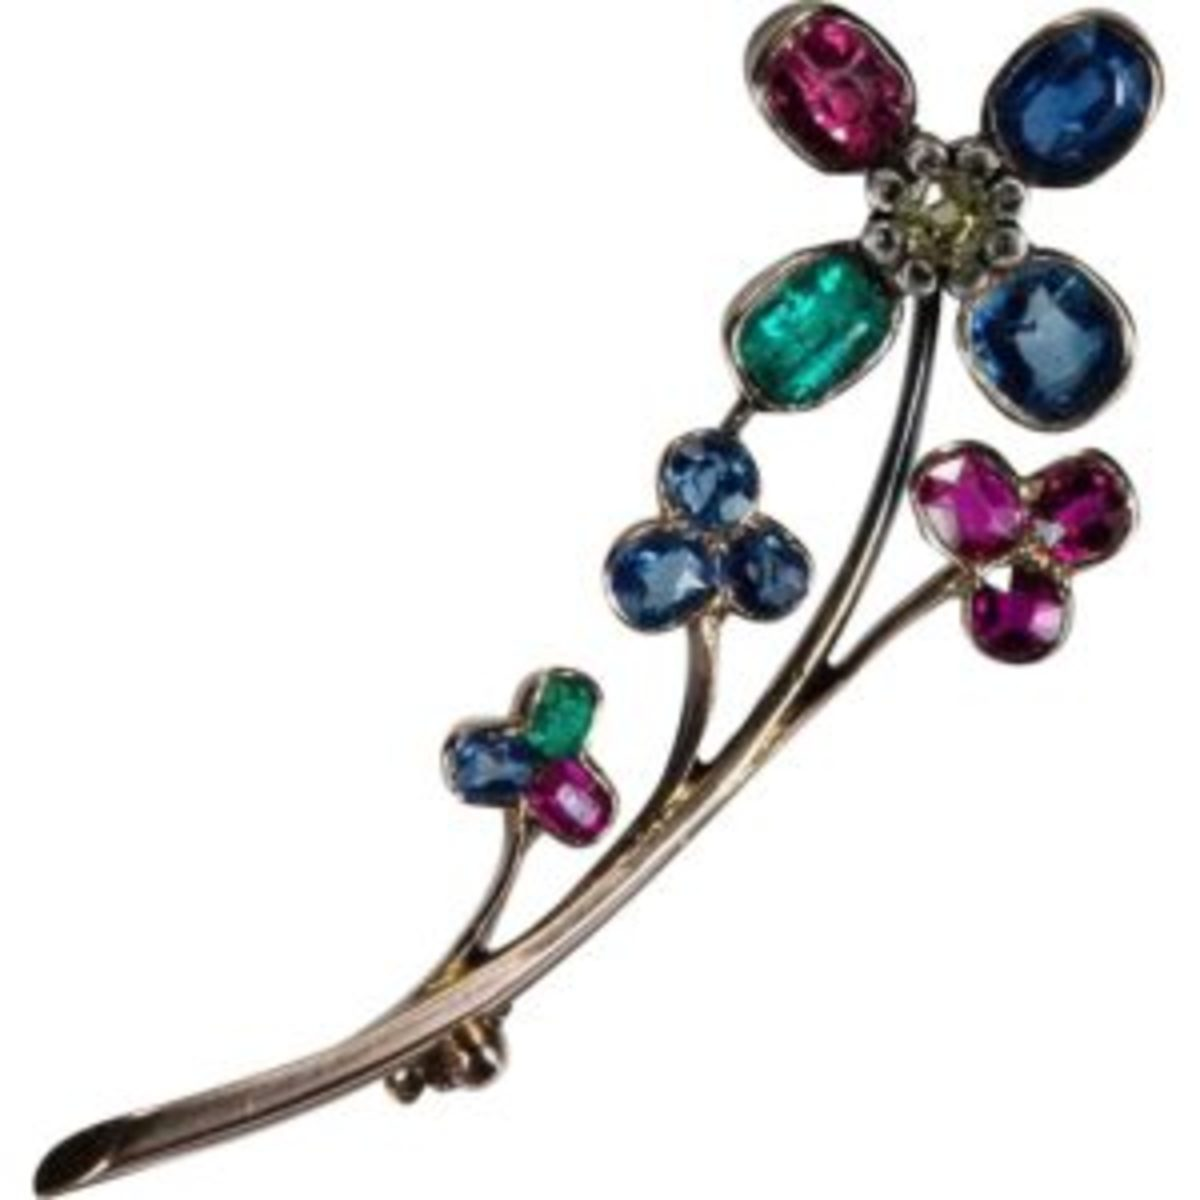 Old Euro Diamond Cushion Cut Emerald Ruby Sapphire Brooch 18k Gold Mixed Gemstone Flower Brooch $1,899. Courtesy of Ruby Lane